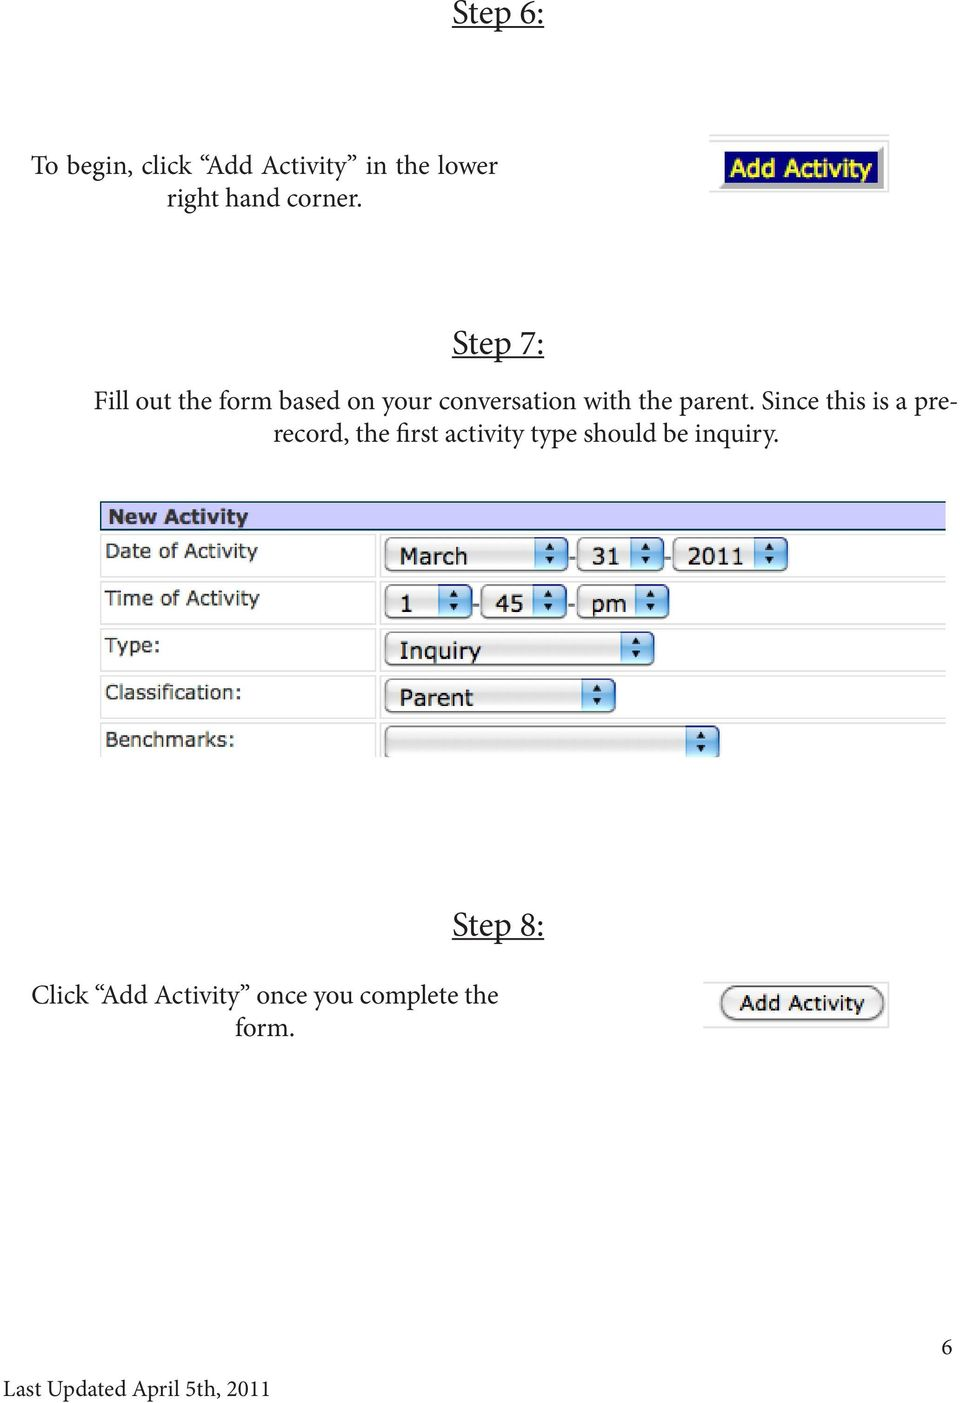 Step 7: Fill out the form based on your conversation with the